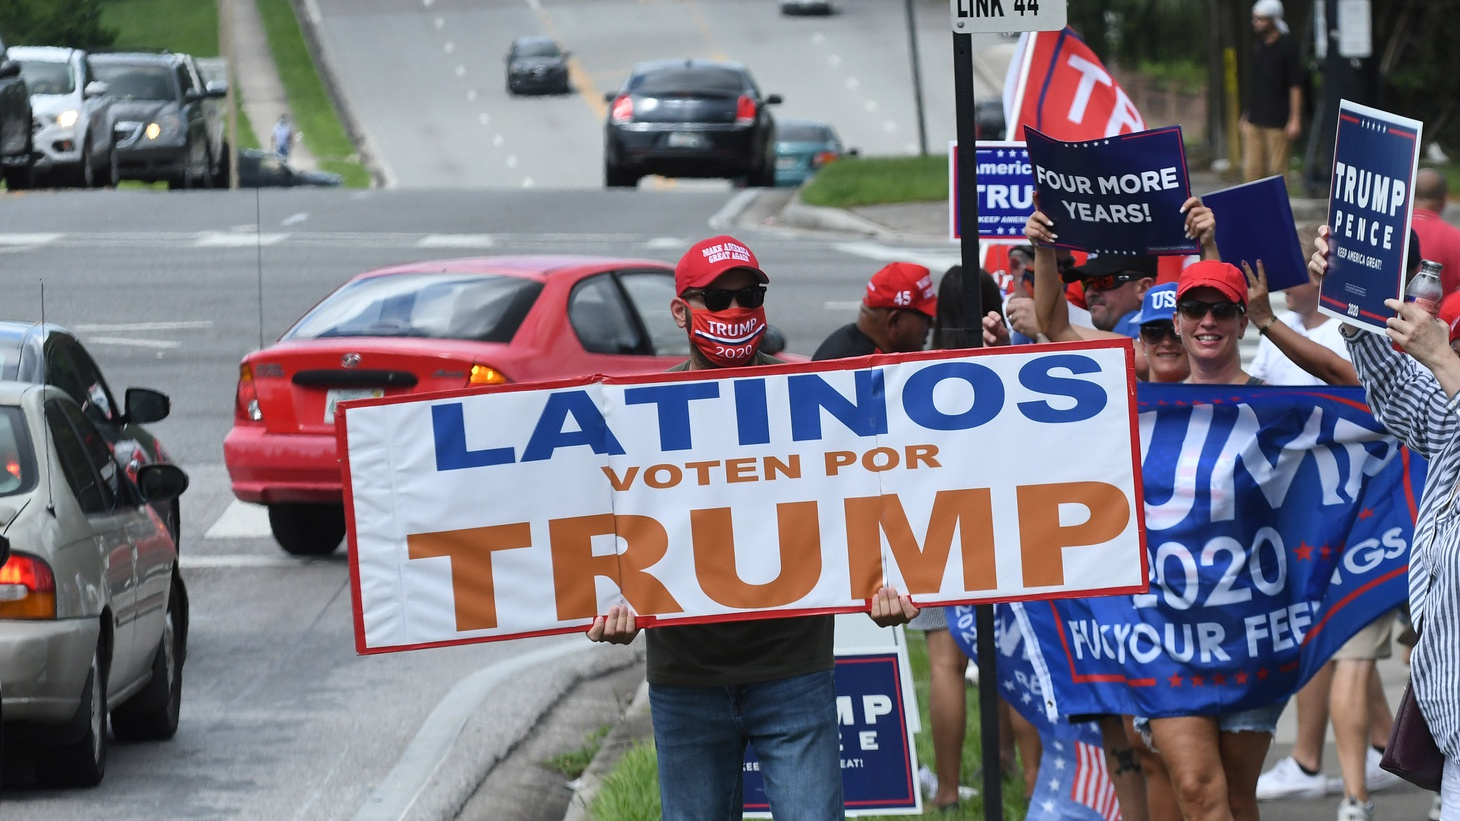 People hold placards after U.S. Vice President Mike Pence addressed supporters at a Latinos for Trump campaign rally at Central Christian University on October 10, 2020 in Orlando, Florida. With 24 days until the 2020 presidential election, both Donald Trump and Democrat Joe Biden are courting the Latino vote as Latinos are the largest racial or ethnic minority in the electorate, with 32 million eligible voters.